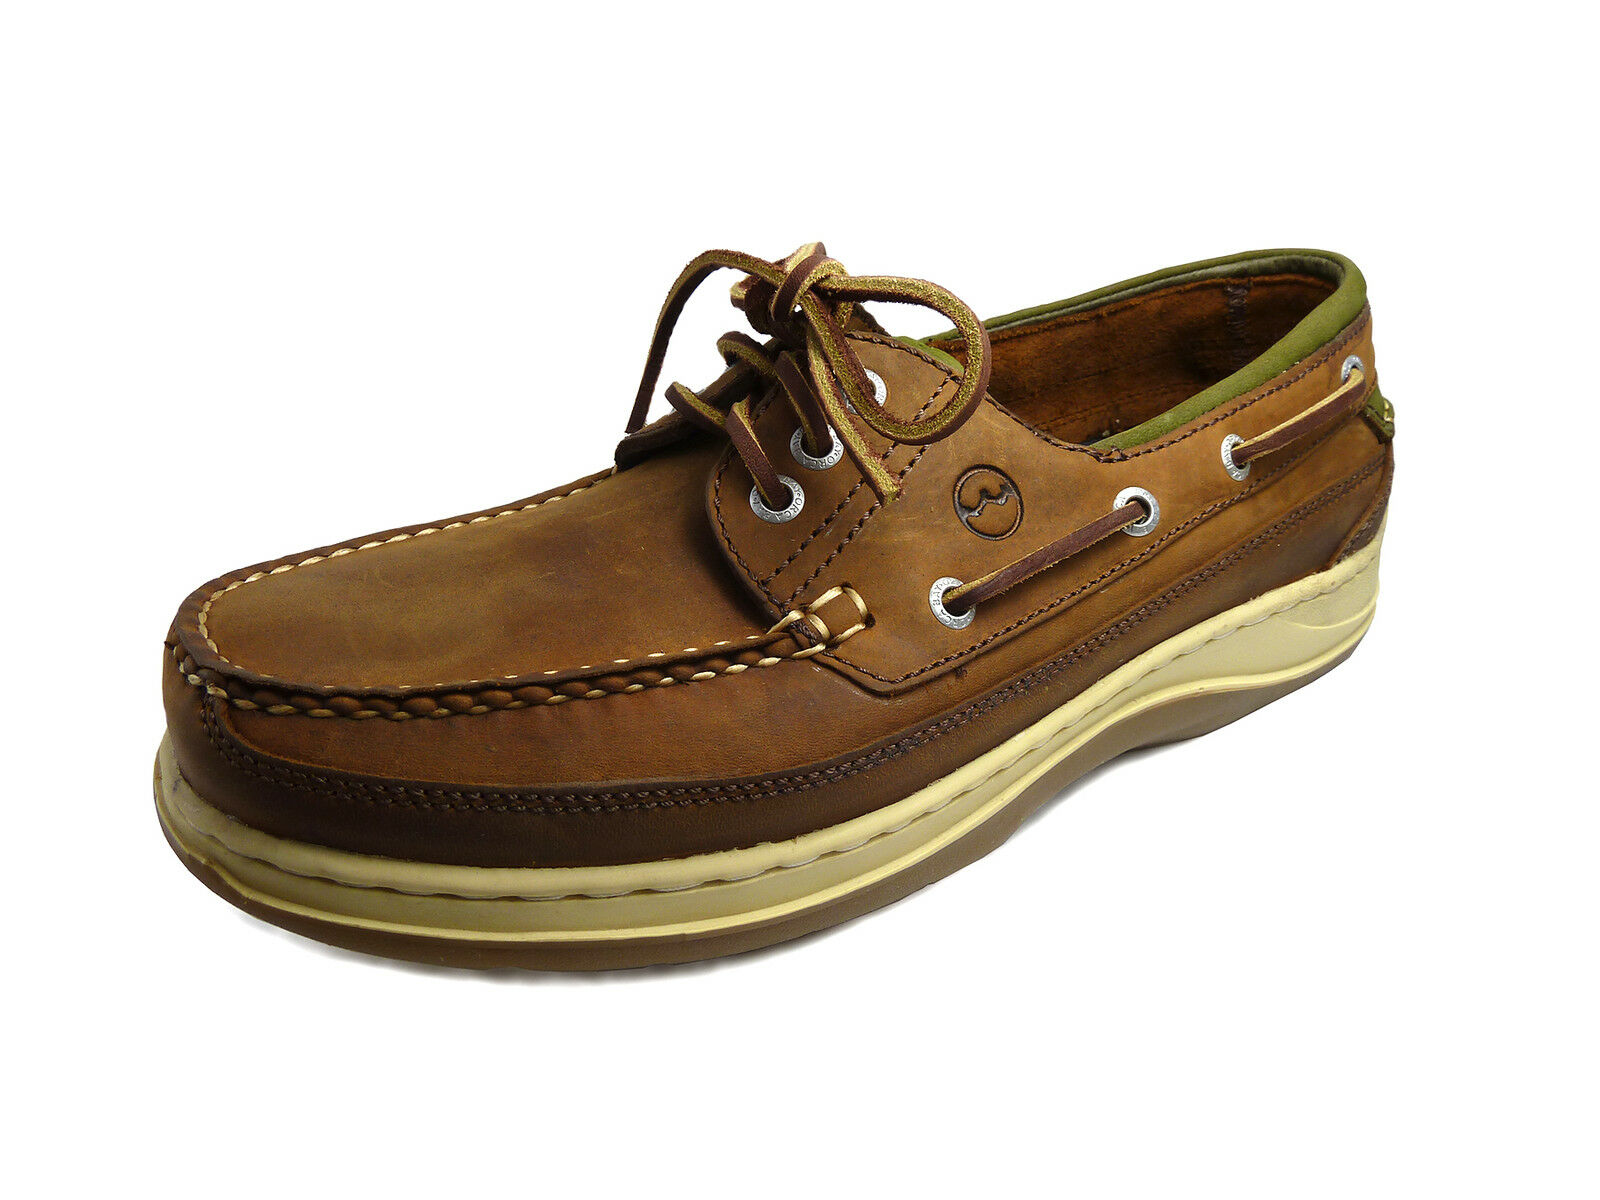 Orca Bay Squamish Men's Performance Boat Shoe - 100% hand-stitched leather